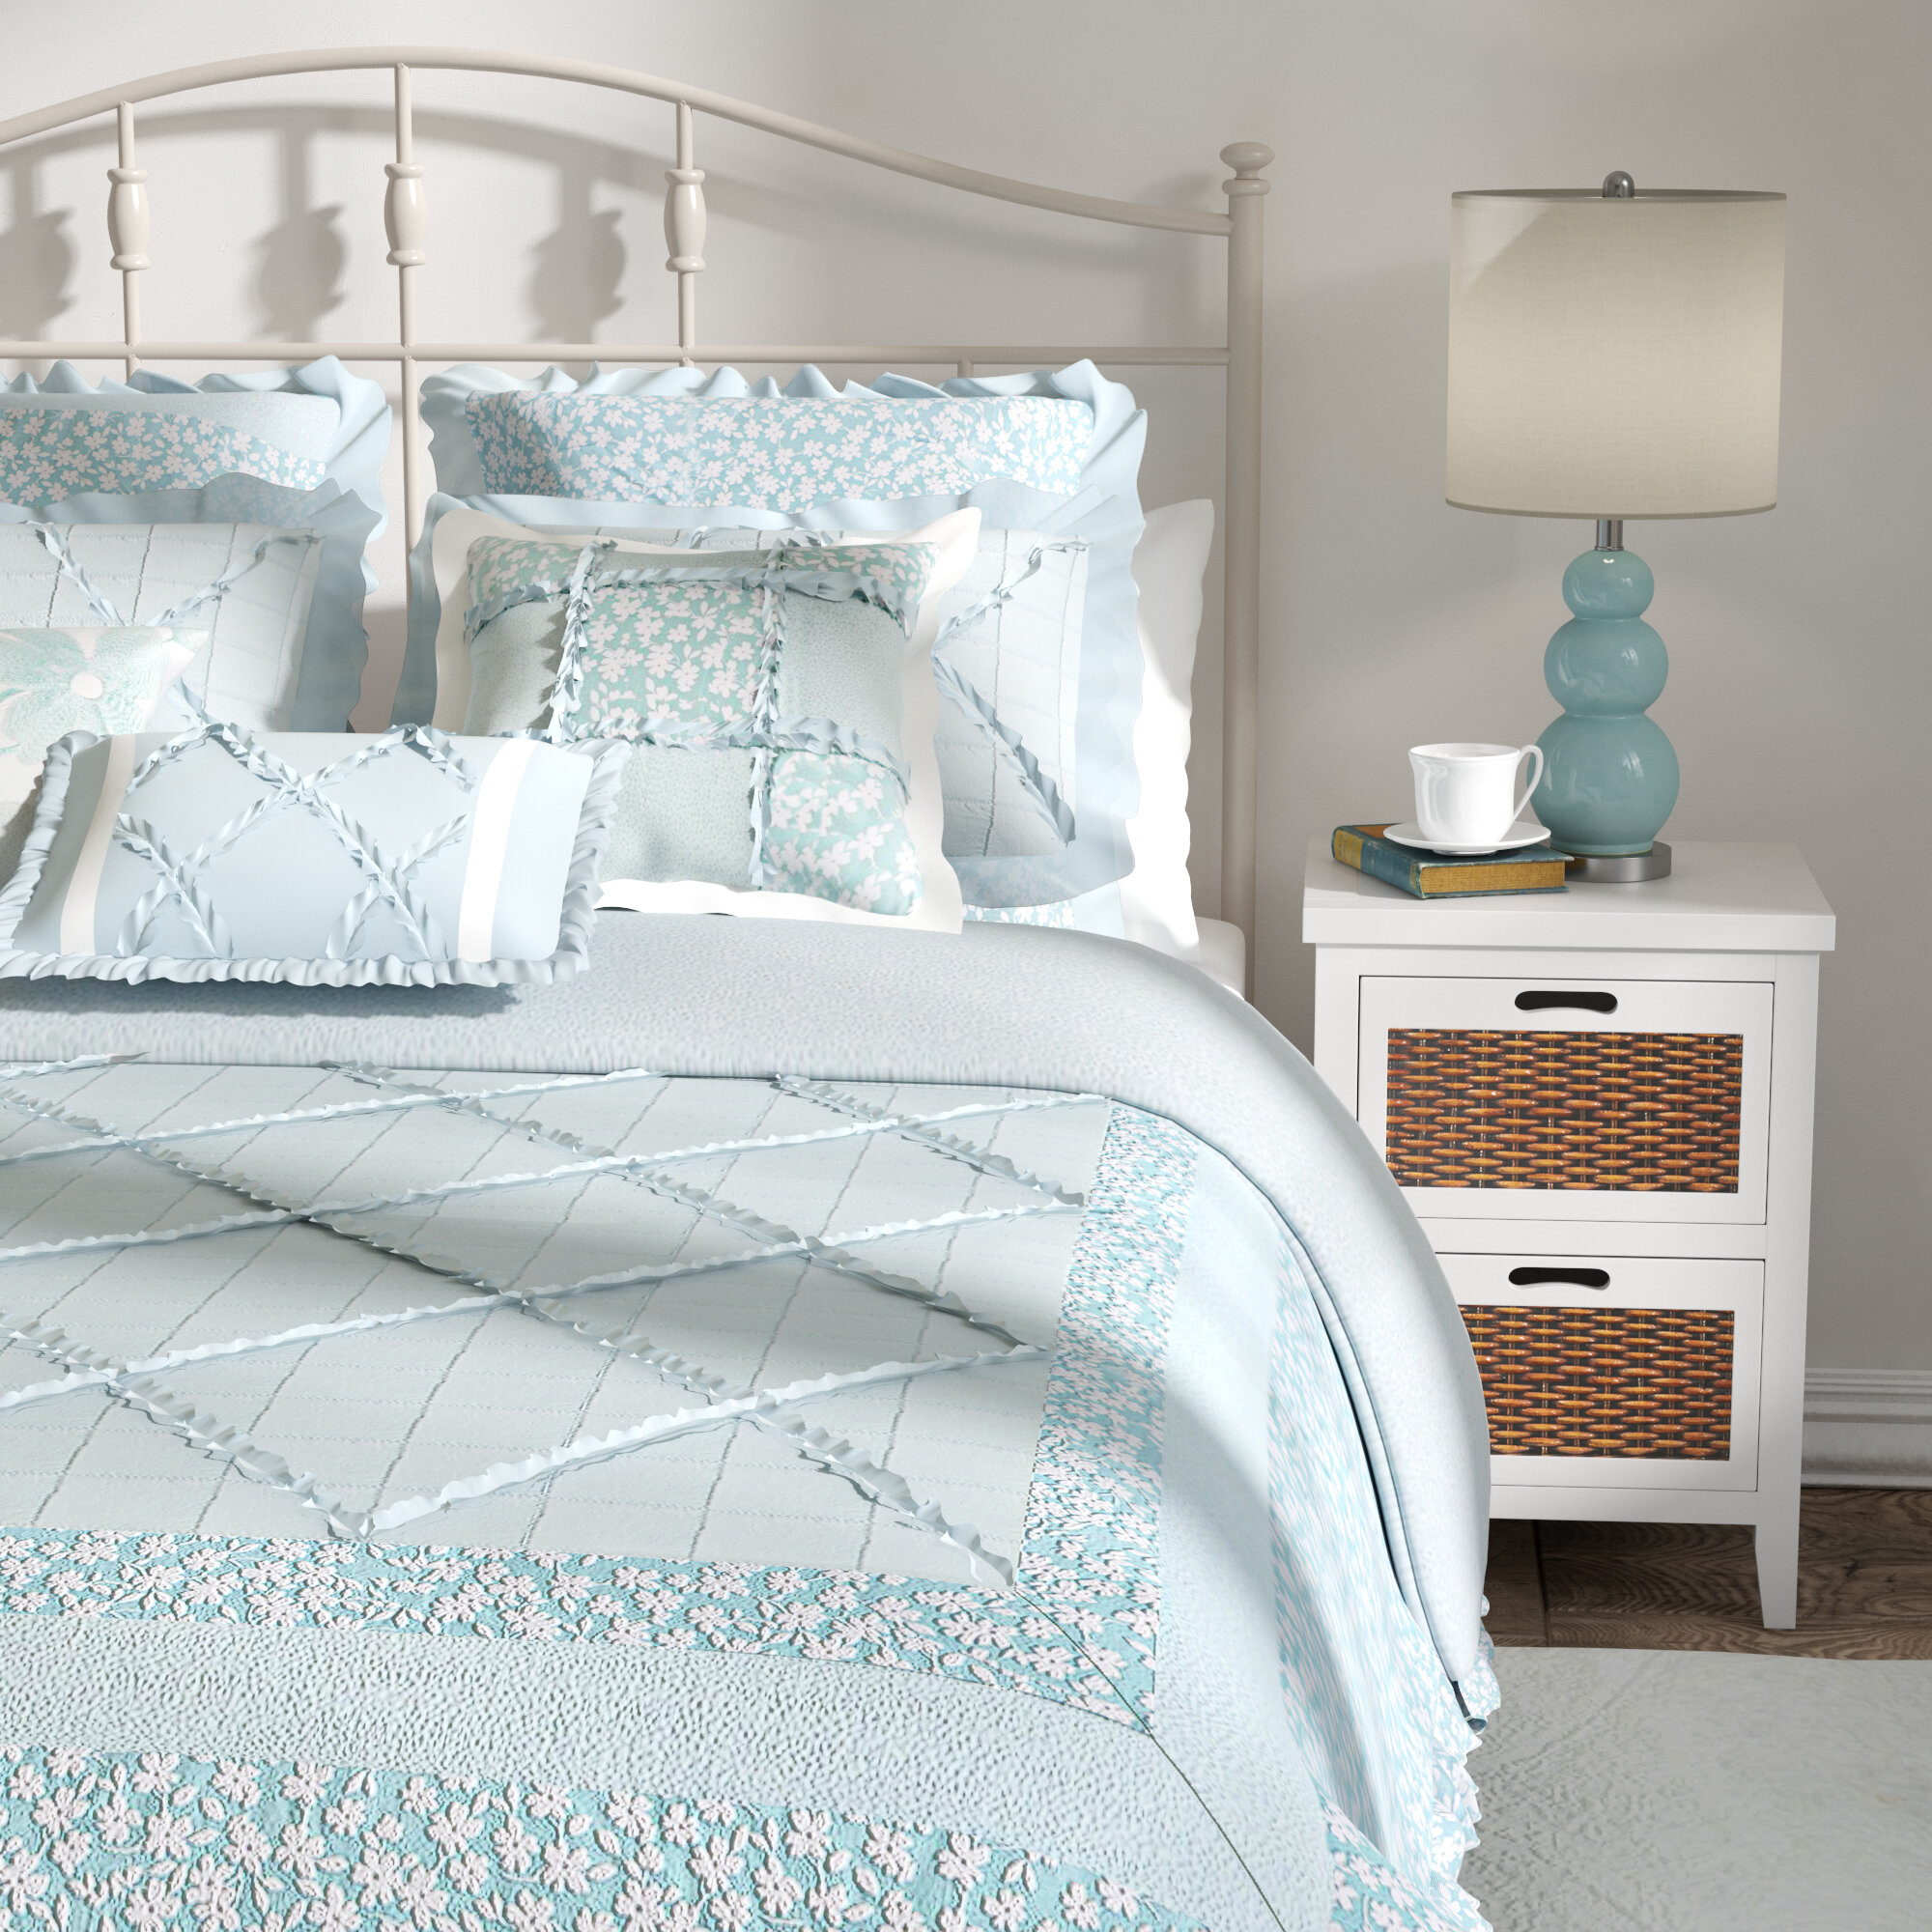 cfm essentials by inuse bed set complete product hayneedle madison comforter sonora piece park